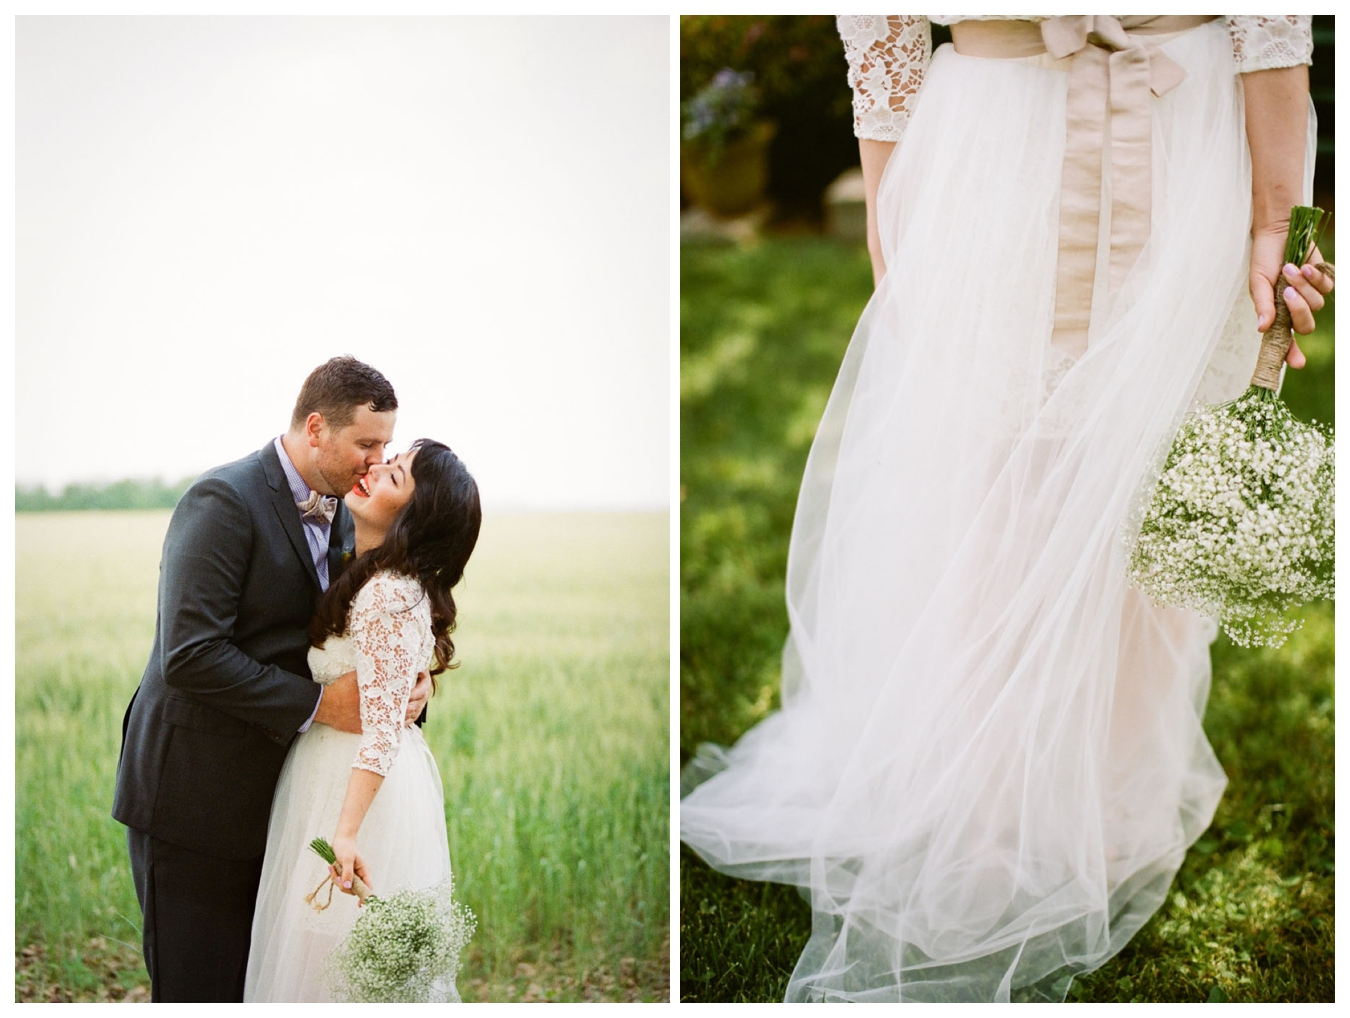 Lily Glass Photography Weddings - Columbus, Ohio, Florist Rose Bredl